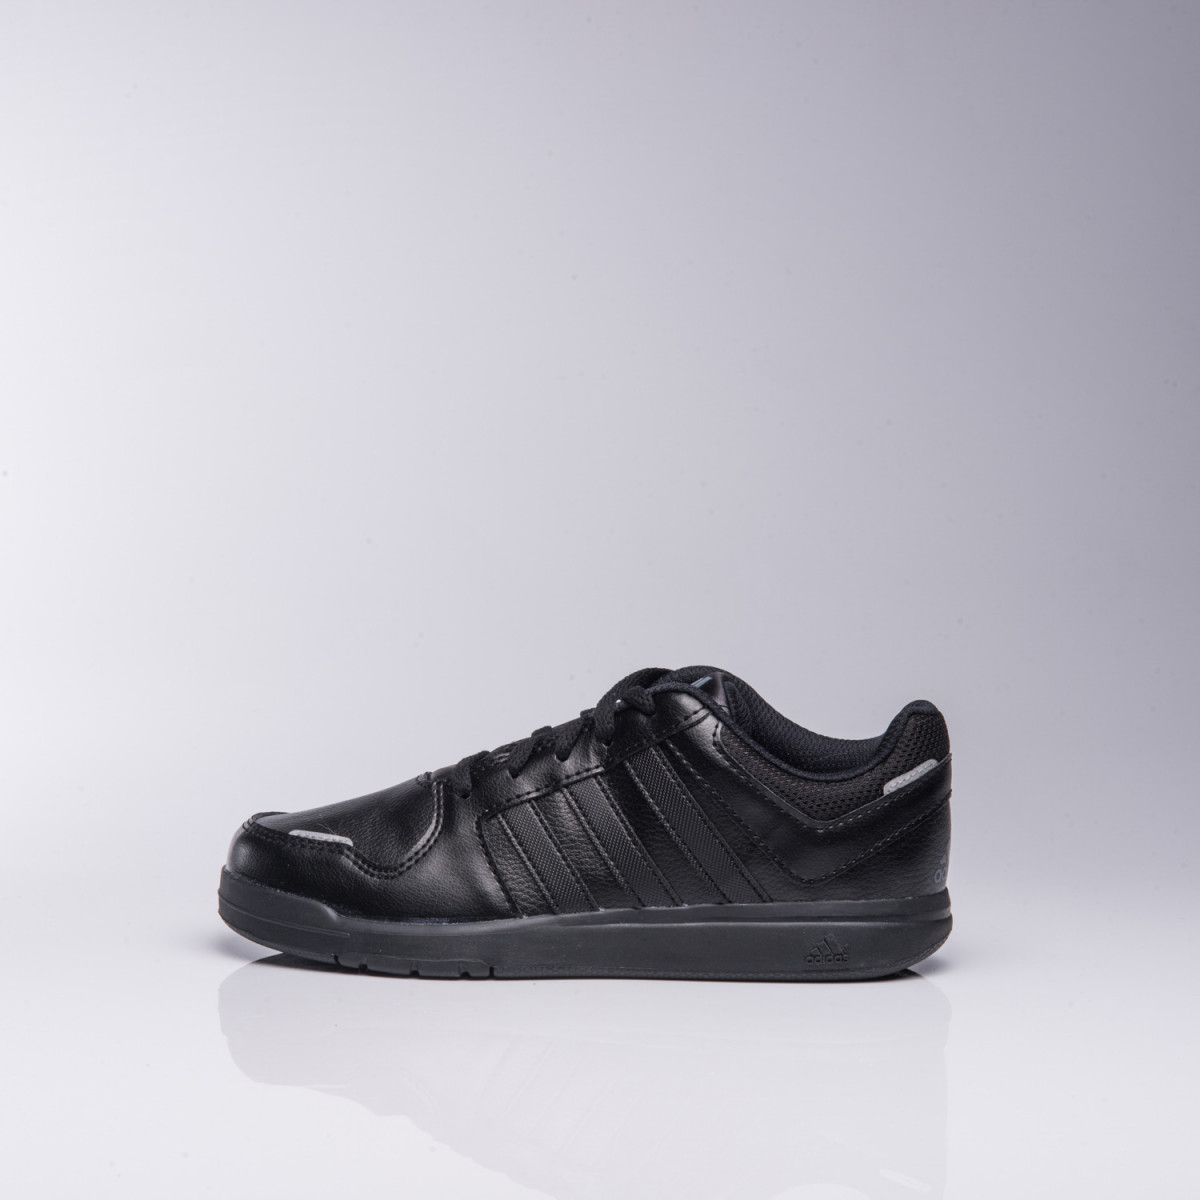 Zapatillas Adidas Lk Trainer 6 Kids